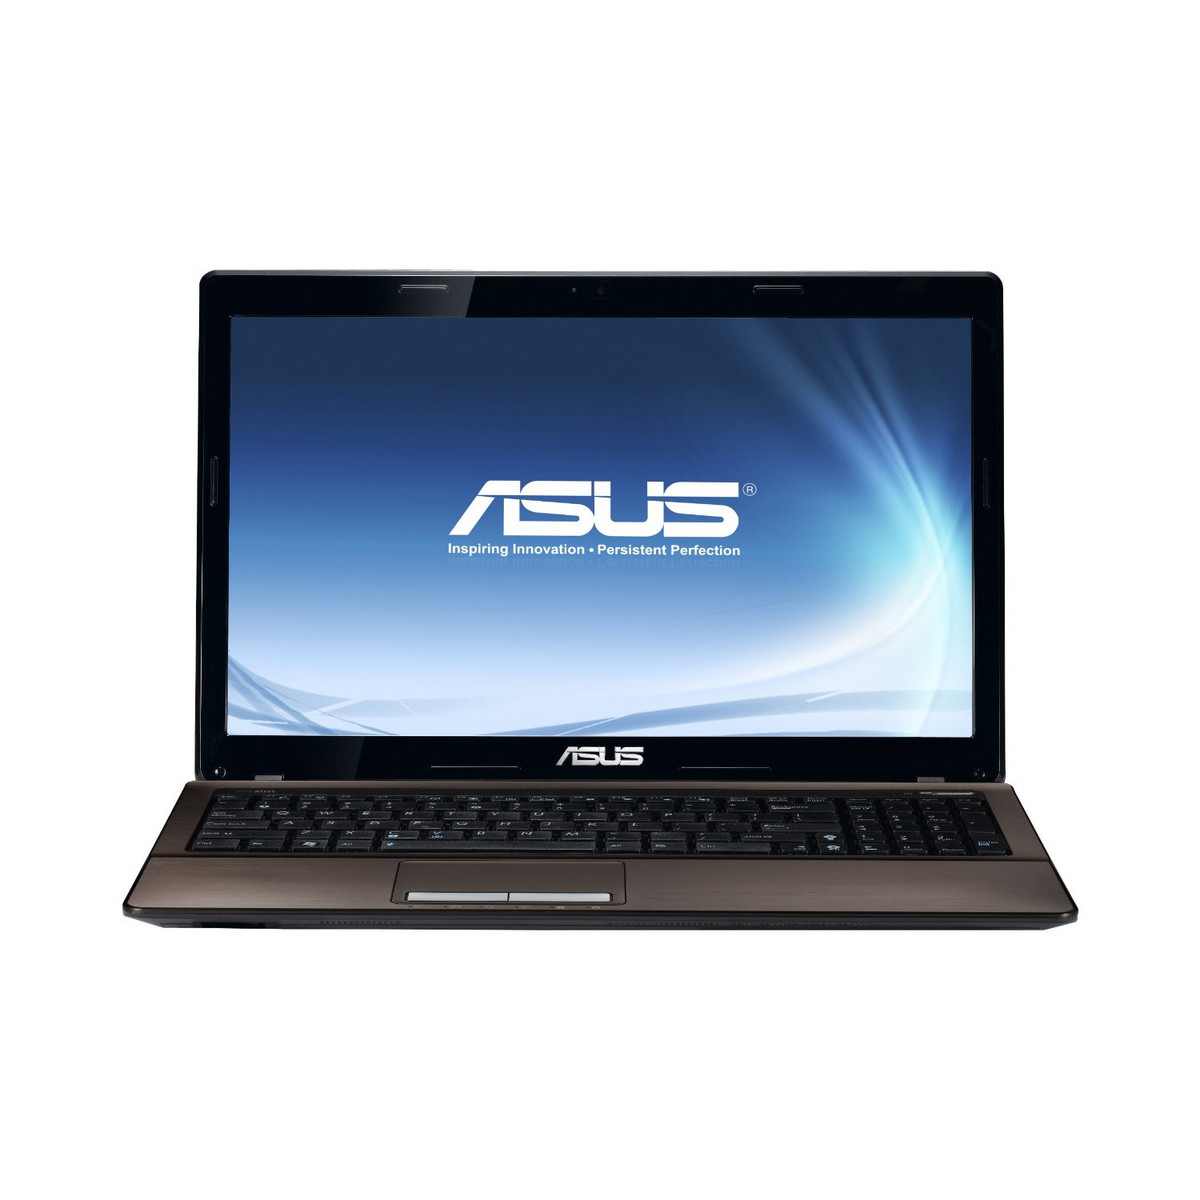 ASUS K53SC TOUCHPAD WINDOWS VISTA DRIVER